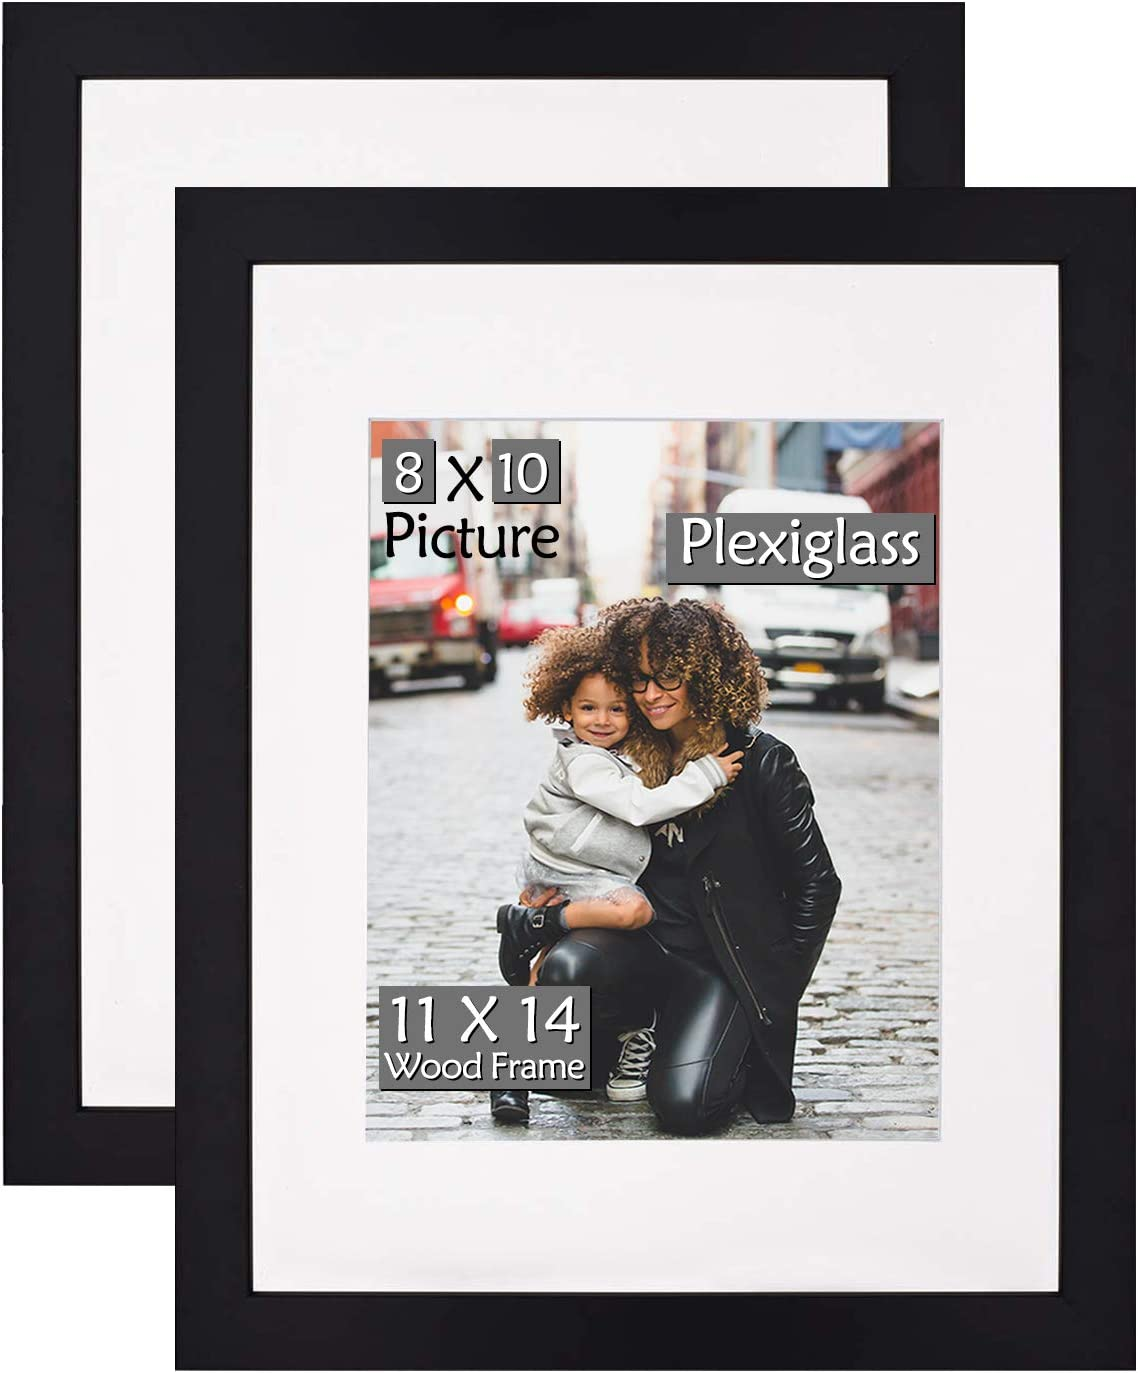 Single Picture Framing Mat 11x14 for 8x10 and 2 sports cards-black color